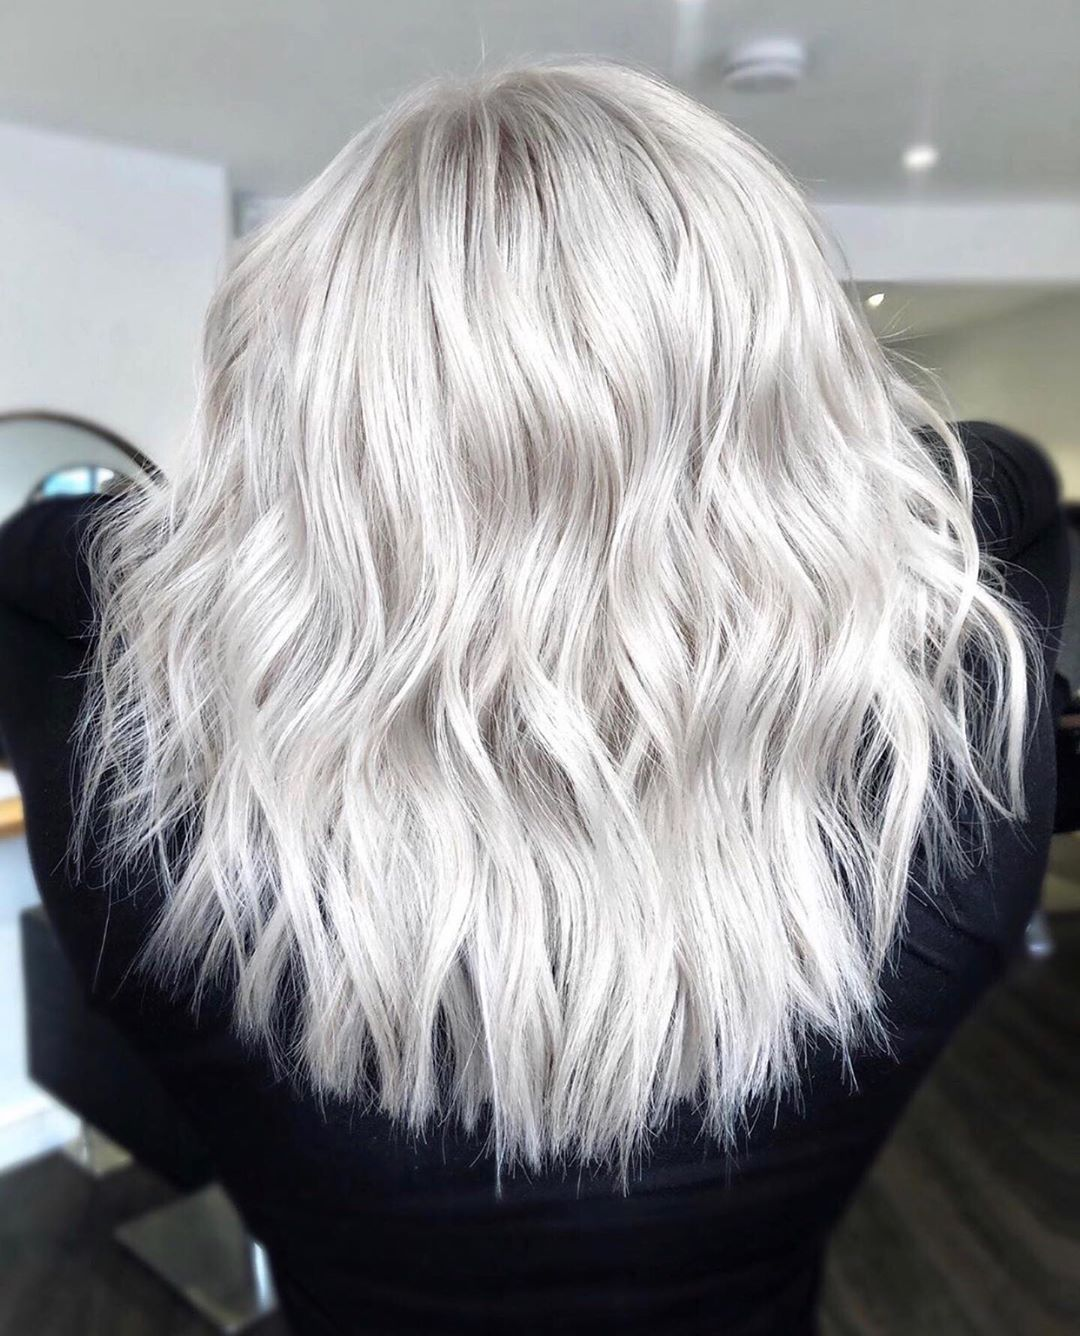 Top 10 Current Hair Color Trends for Women – Cool Hair Color Ideas 2020